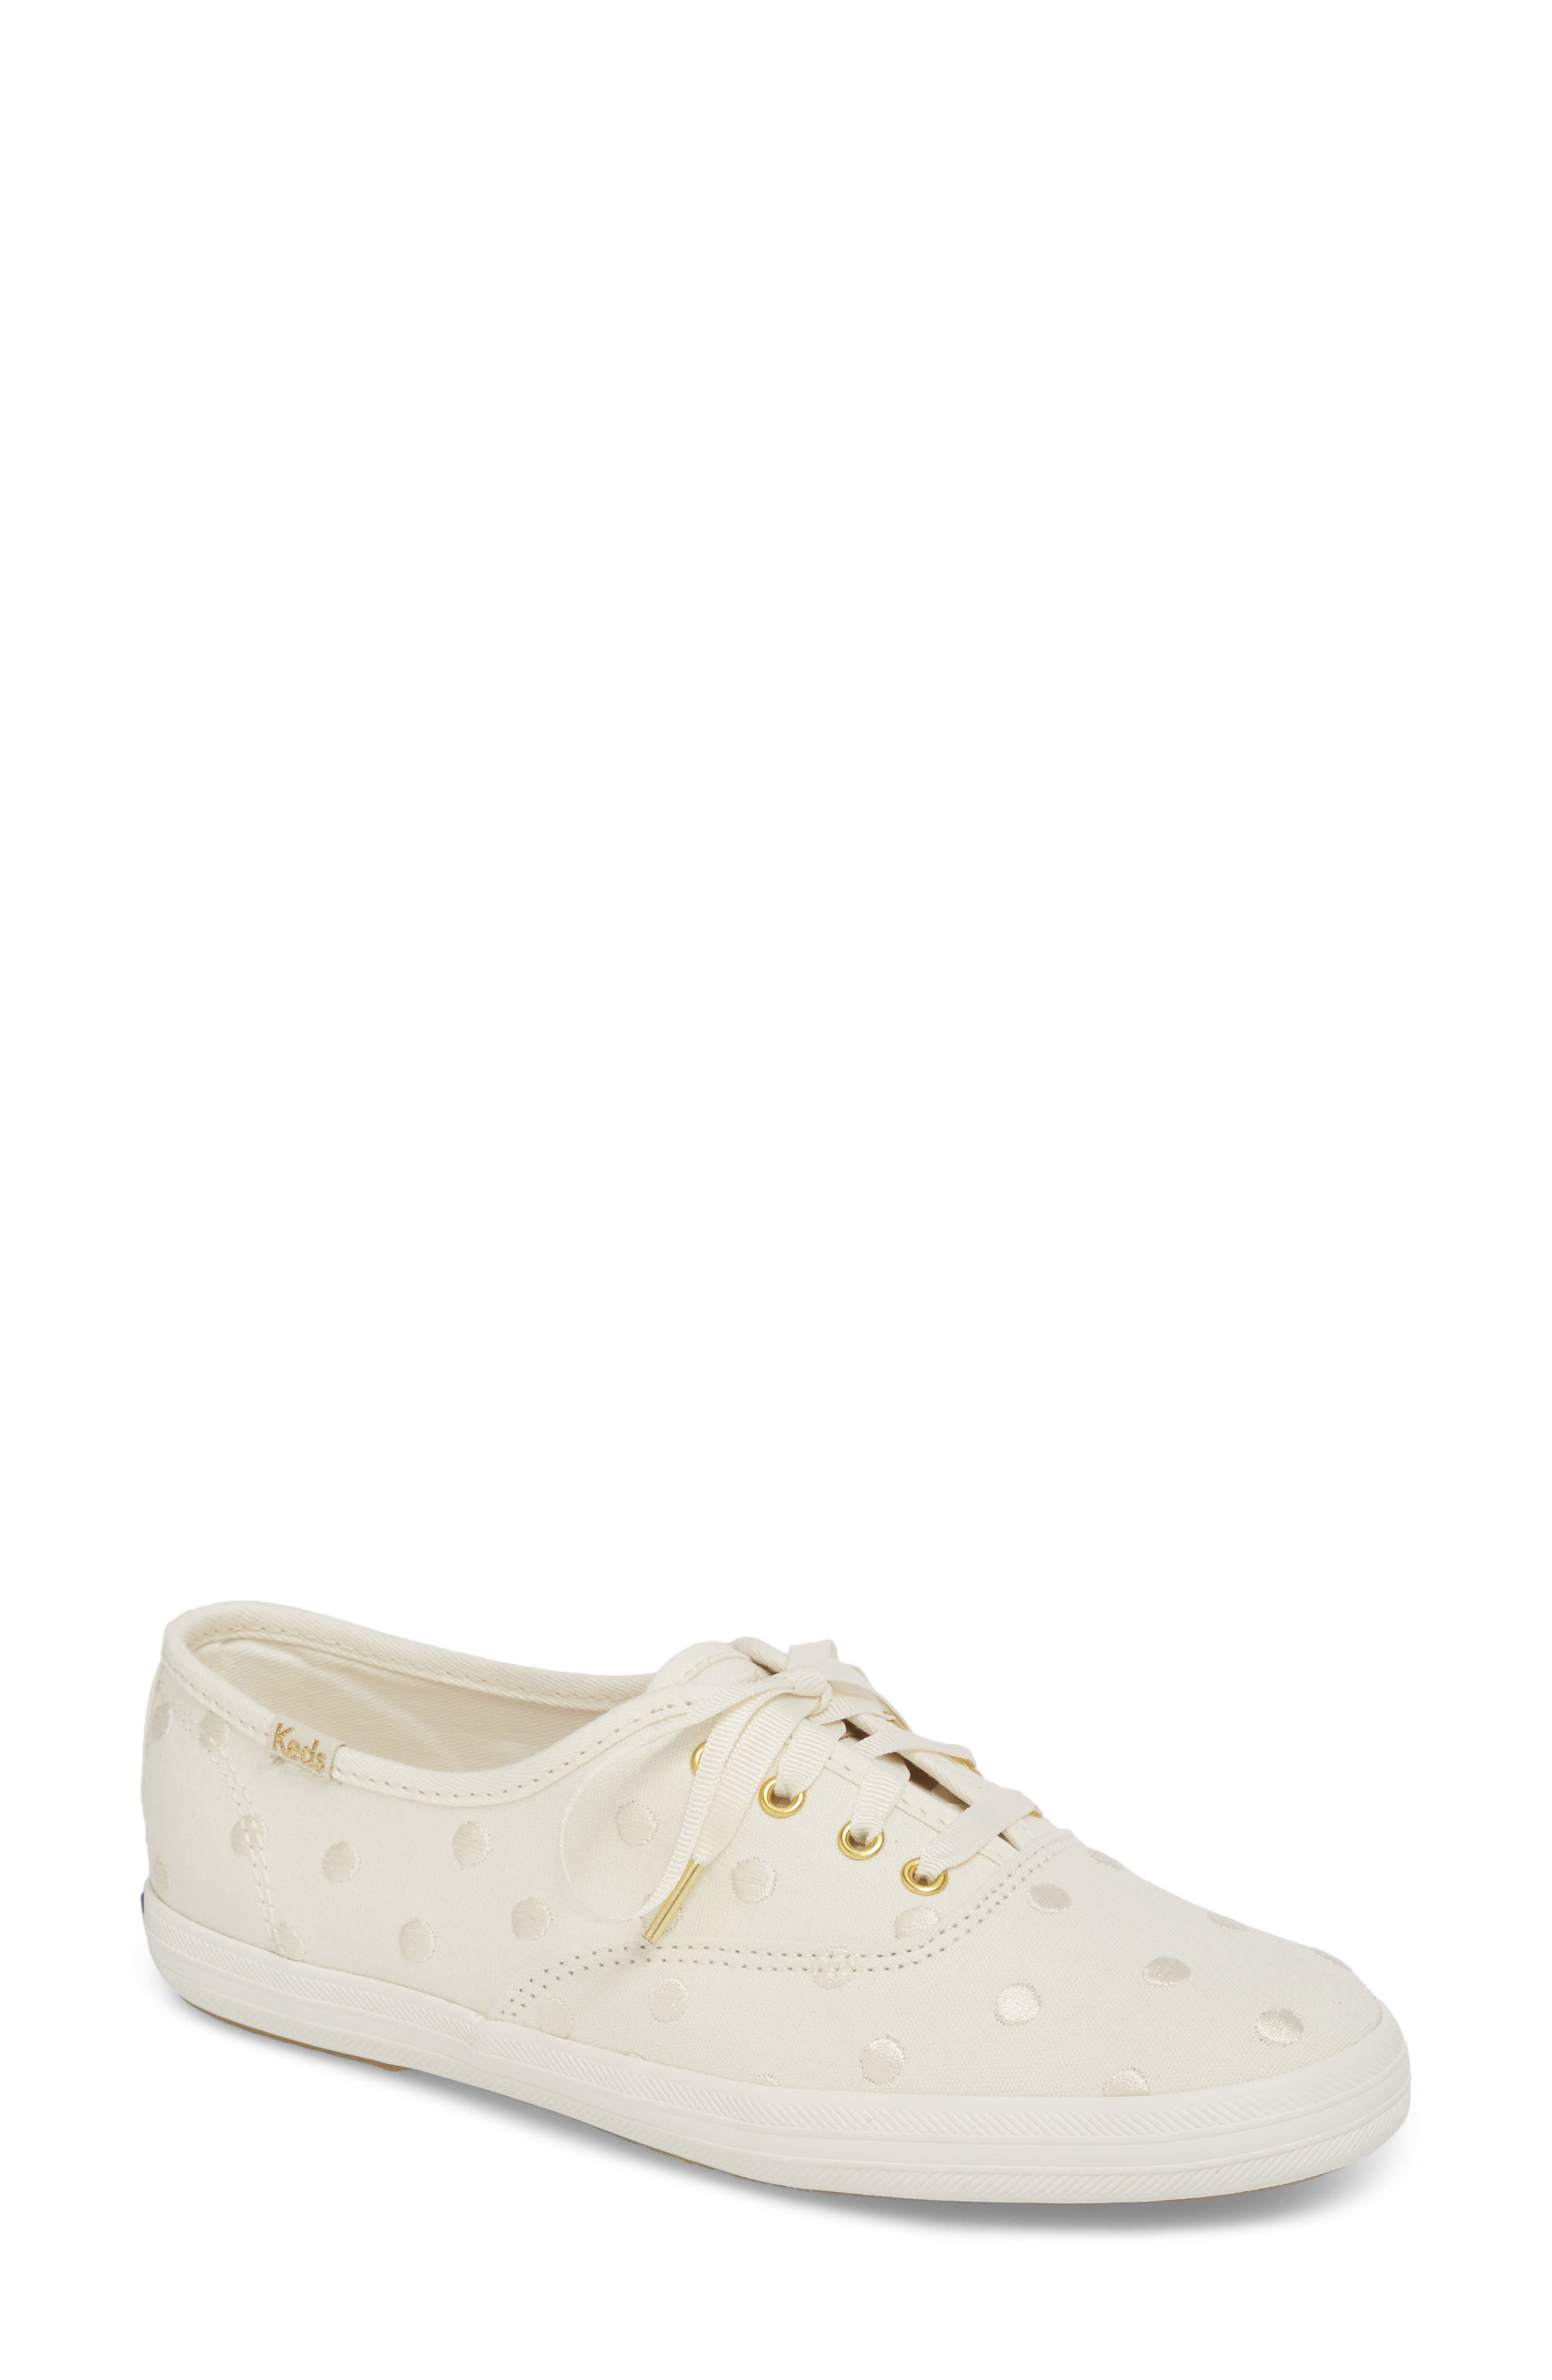 KEDS<SUP>®</SUP> FOR KATE SPADE NEW YORK champion dancing dot sneaker, Main, color, WHITE